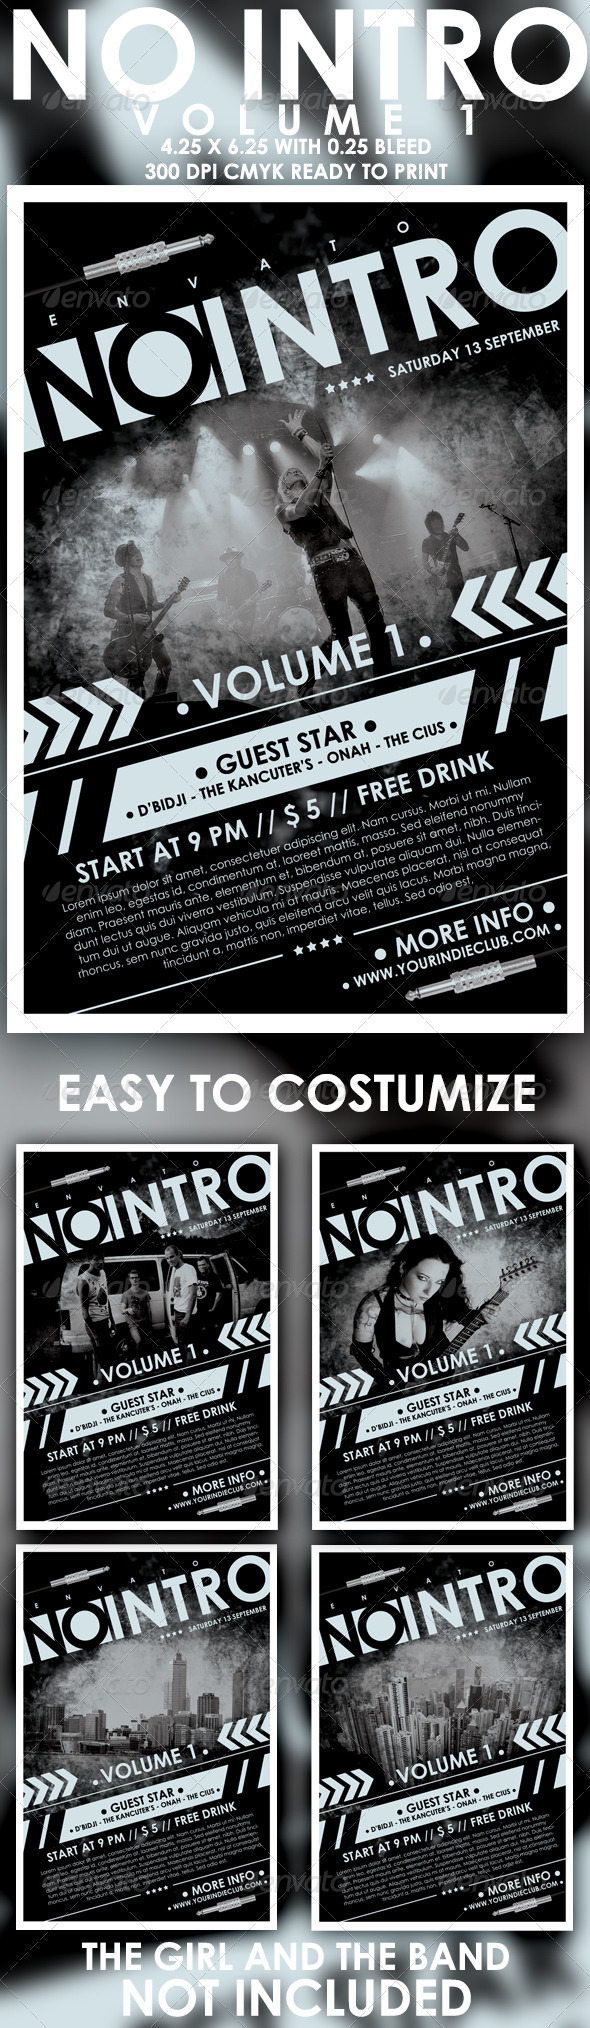 No Intro Vol 1 Flyer Template